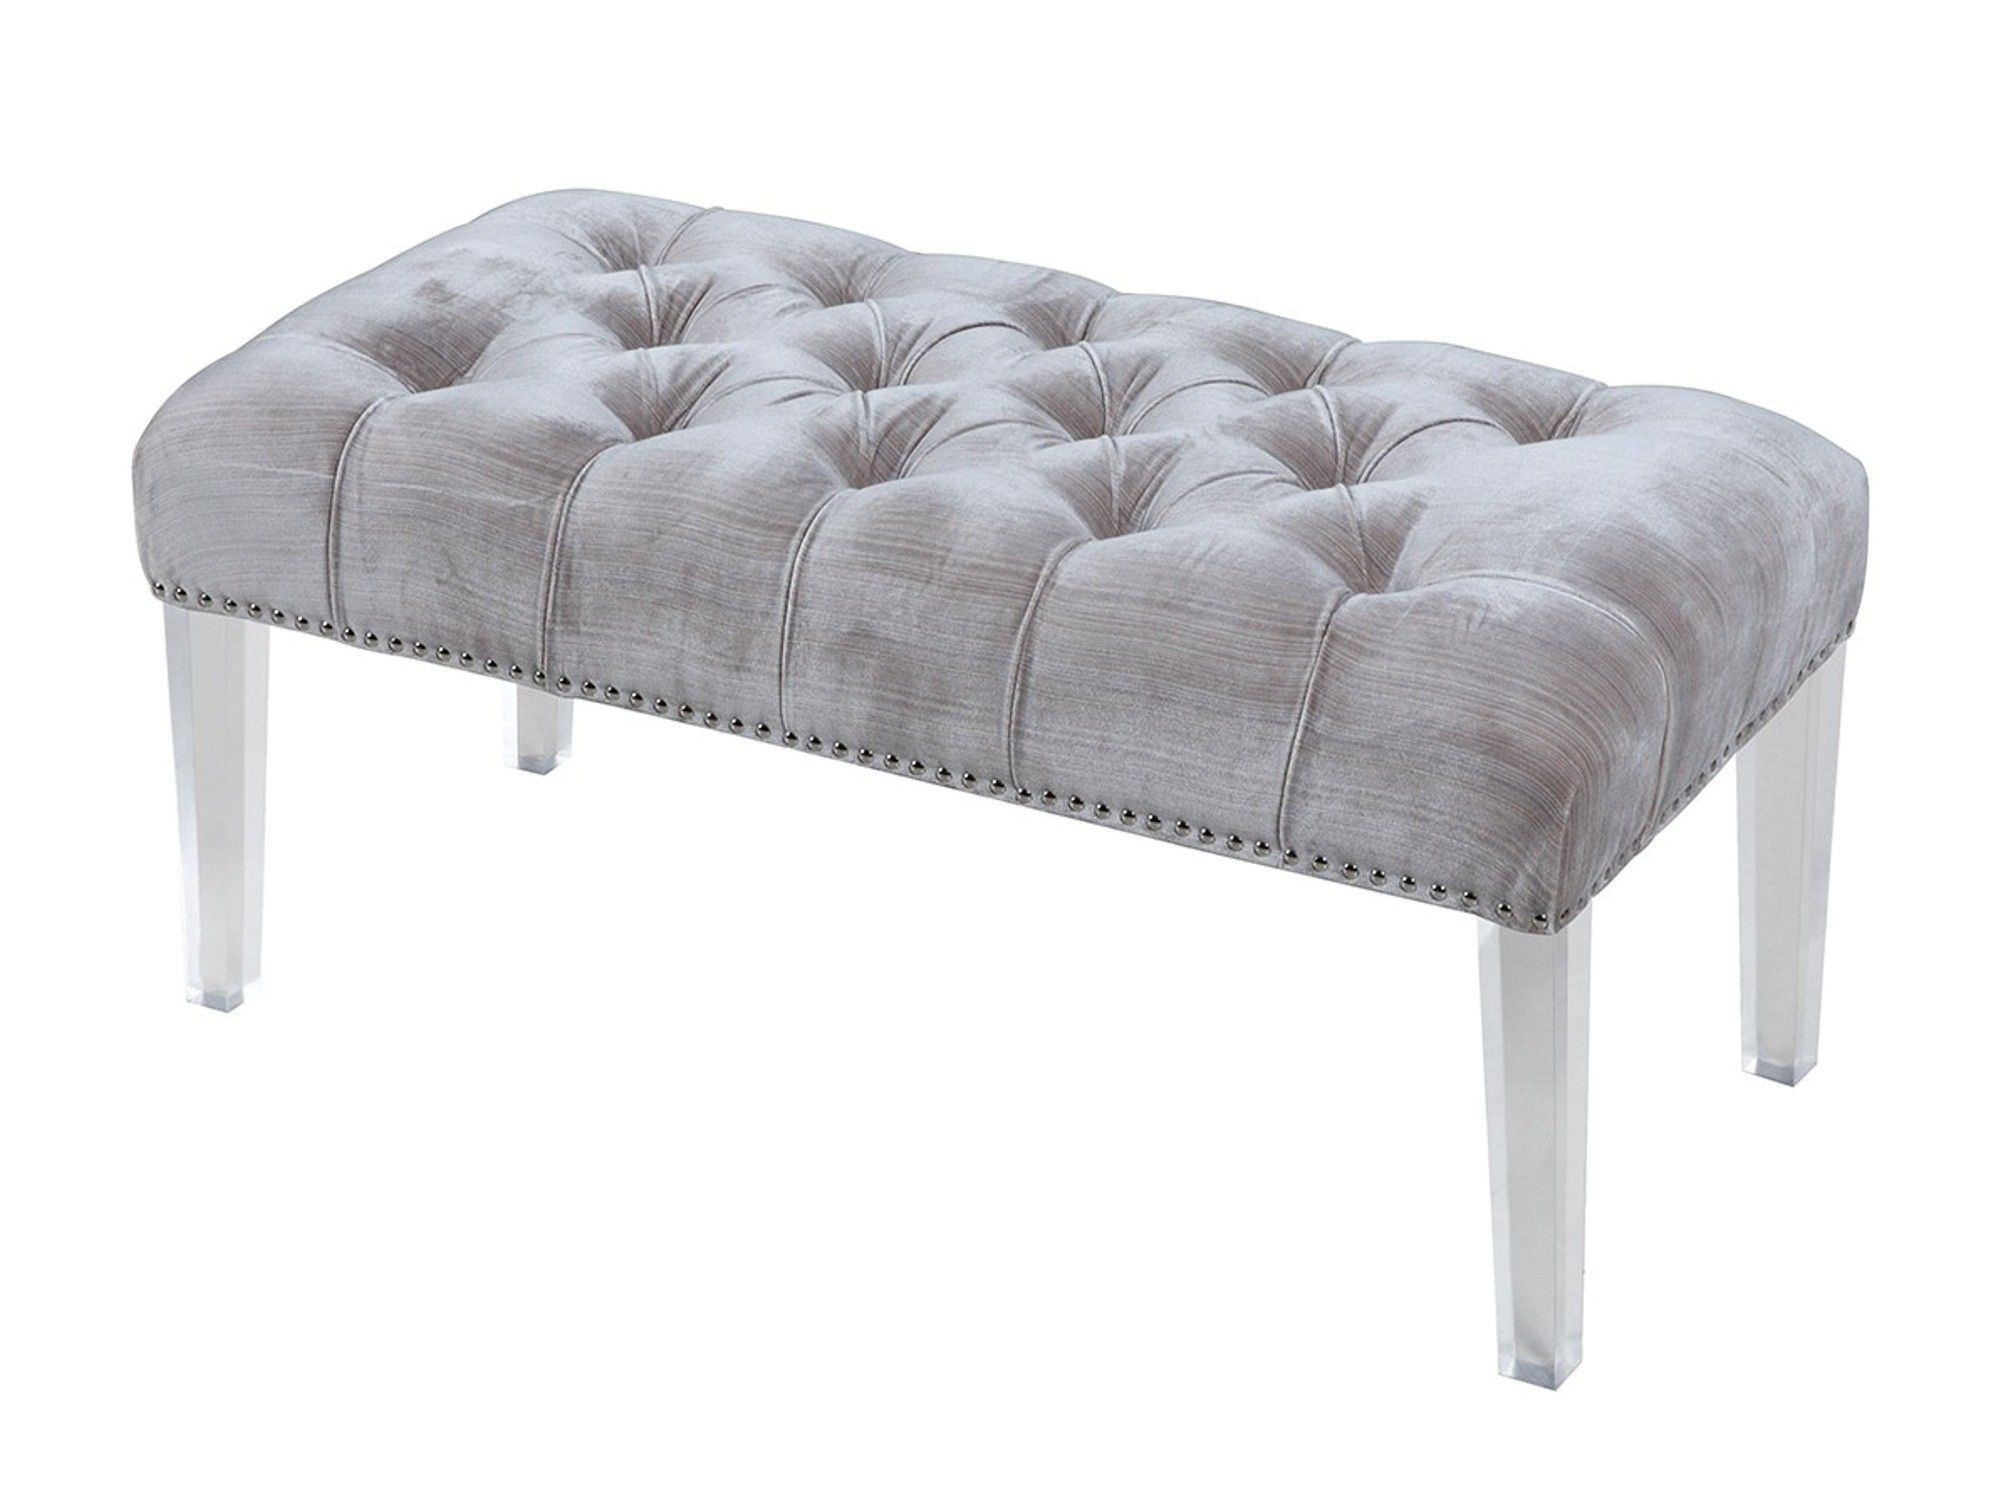 odette upholstered bedroom bench products pinterest bench